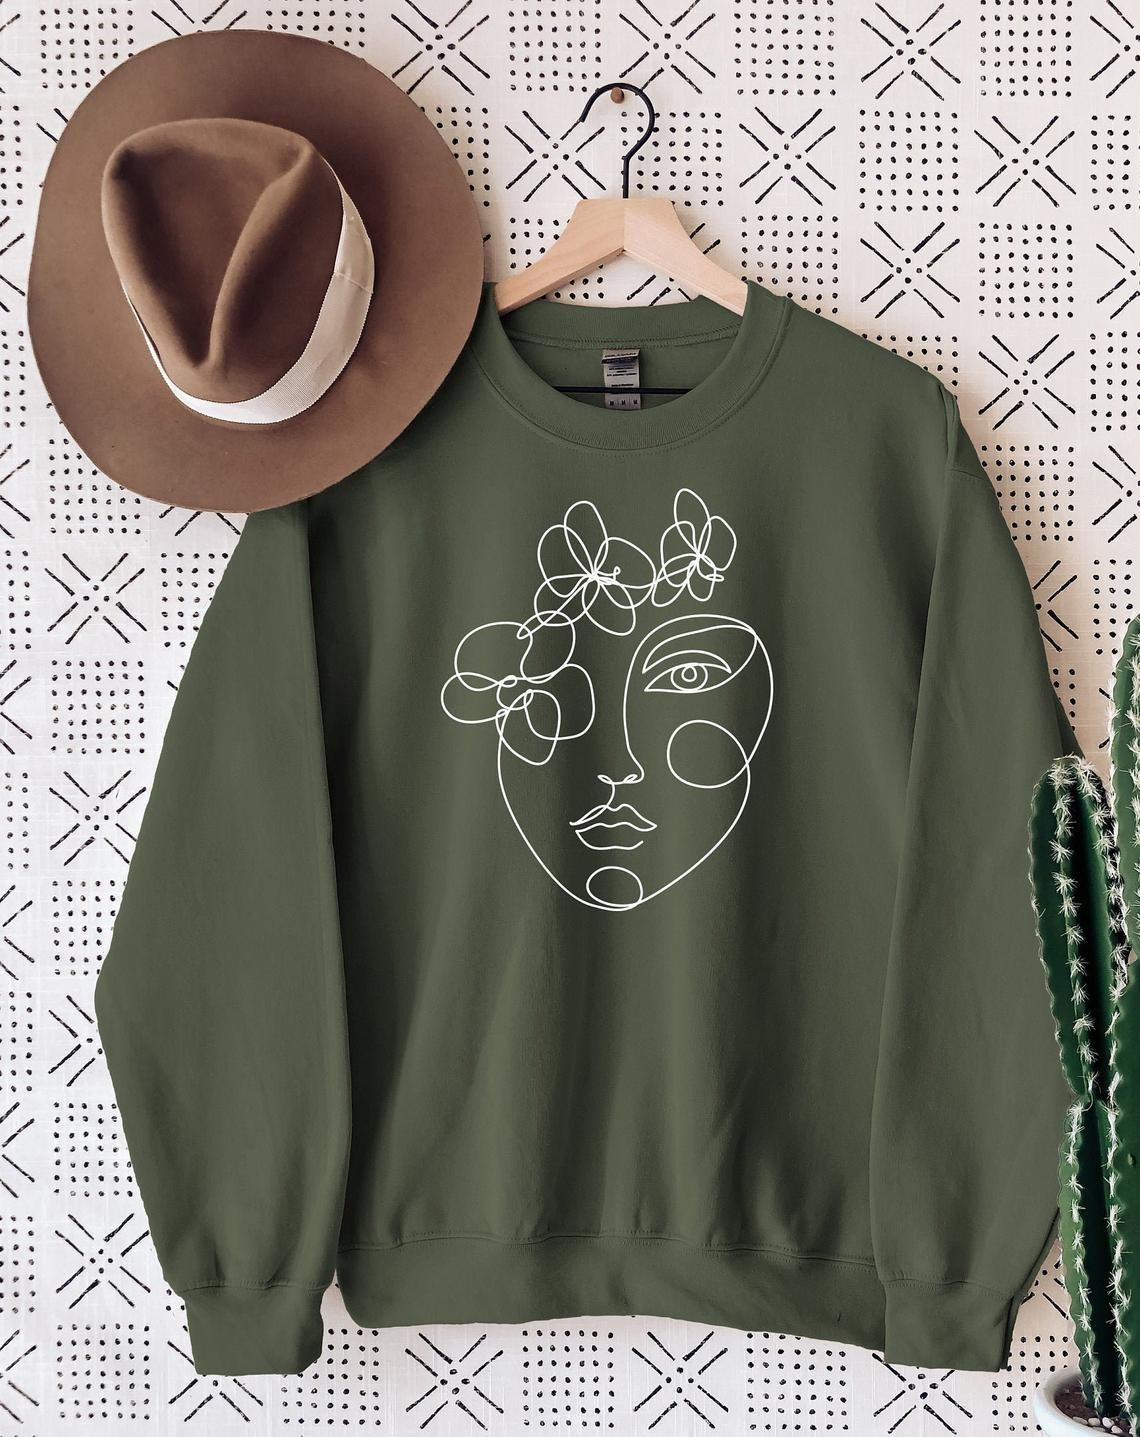 Olive green sweatshirt with face